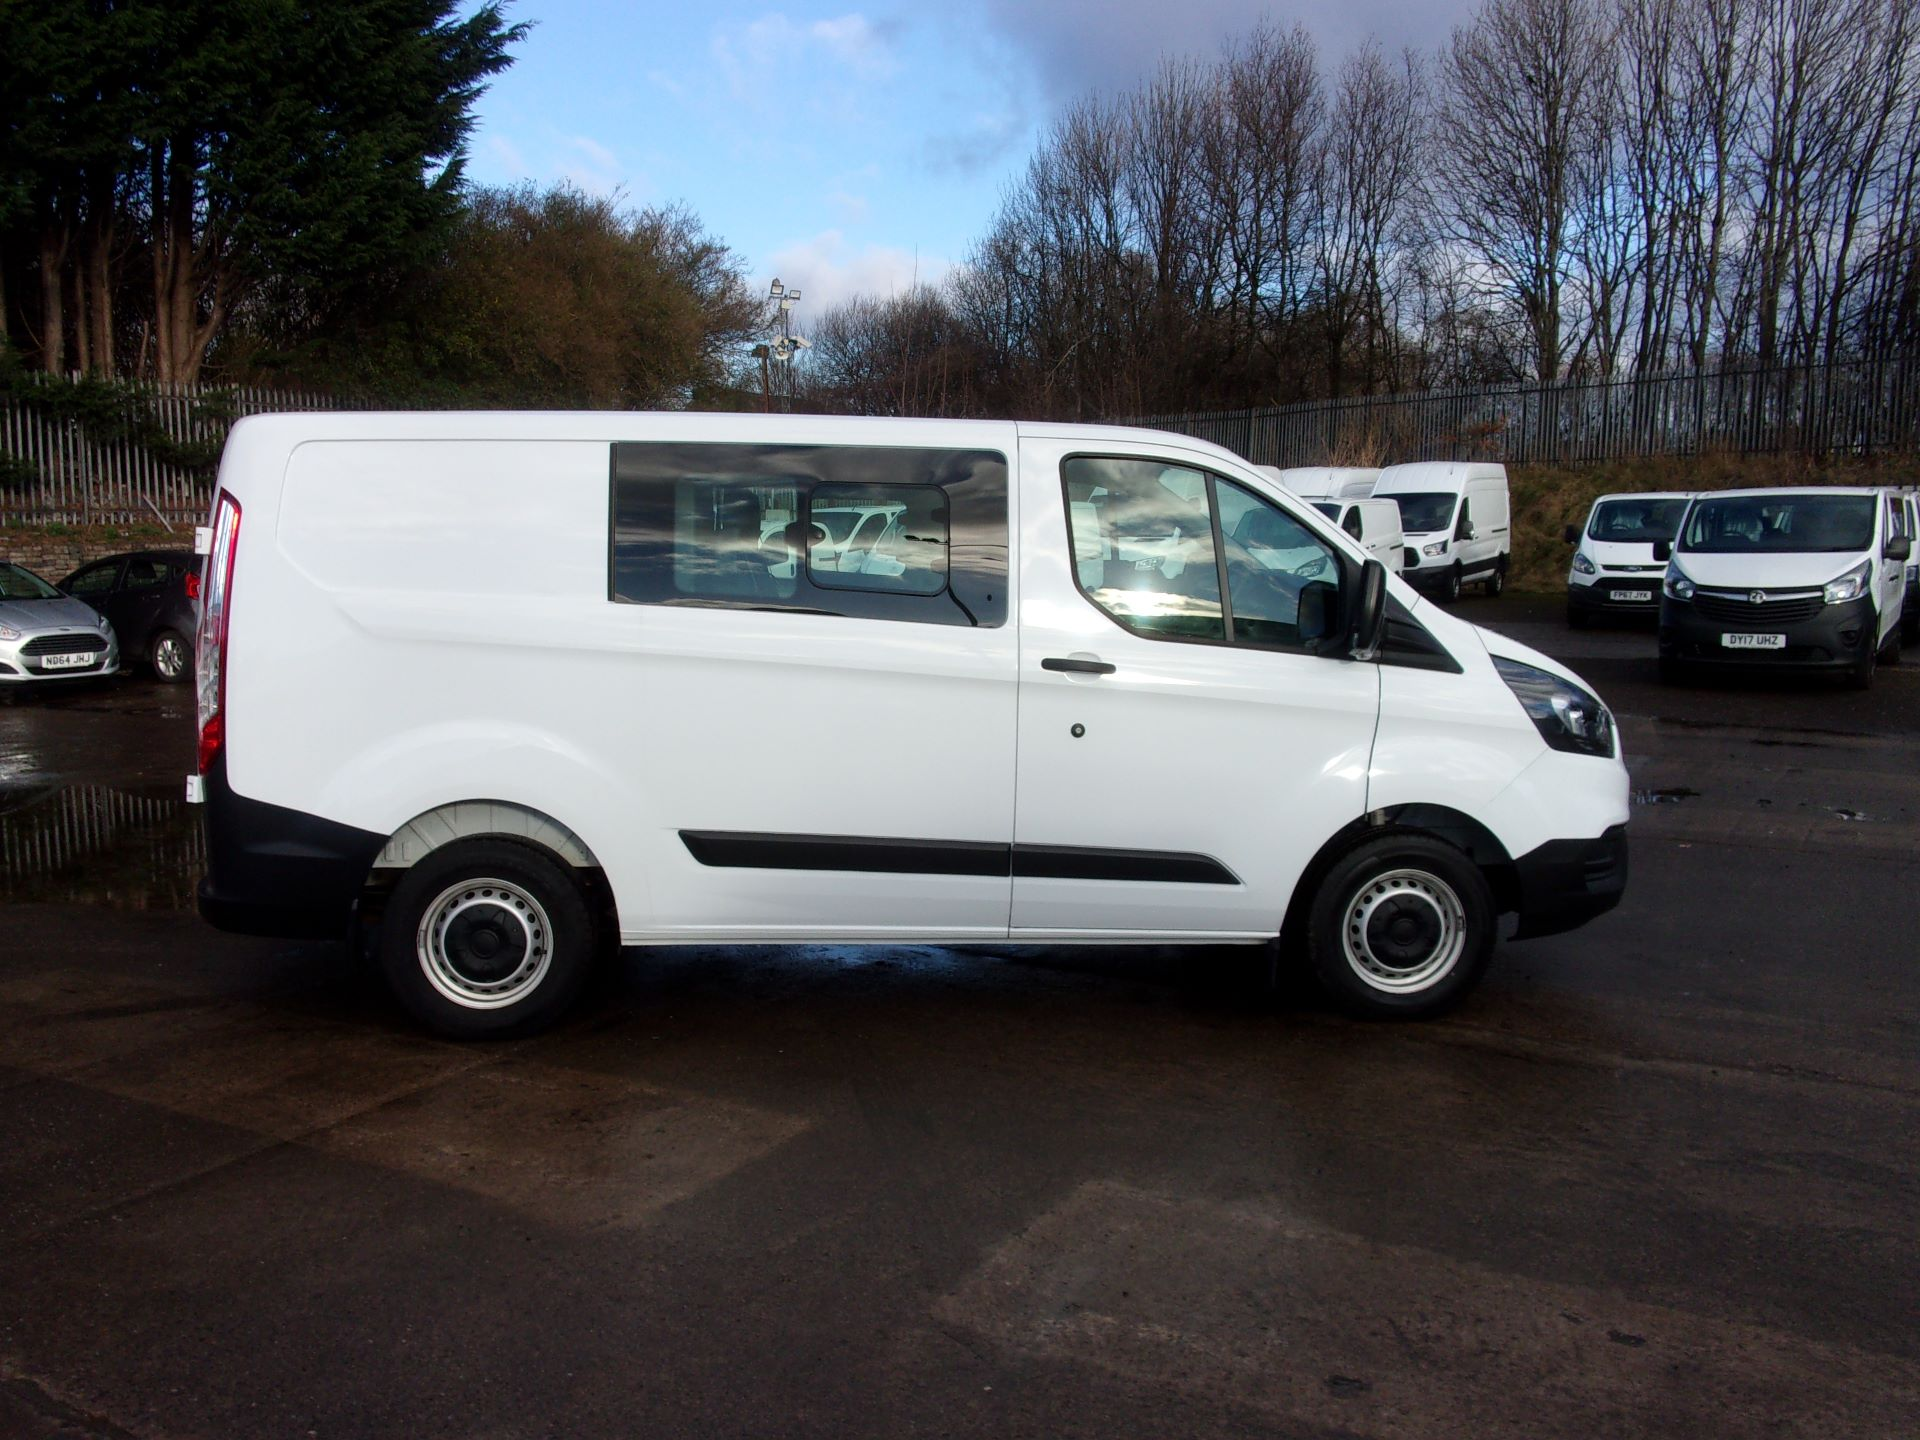 2018 Ford Transit Custom 300 L1 DIESEL FWD 2.0 TDCI 105PS LOW ROOF DOUBLE CAB VAN EURO 6 (FD18WMT) Image 8